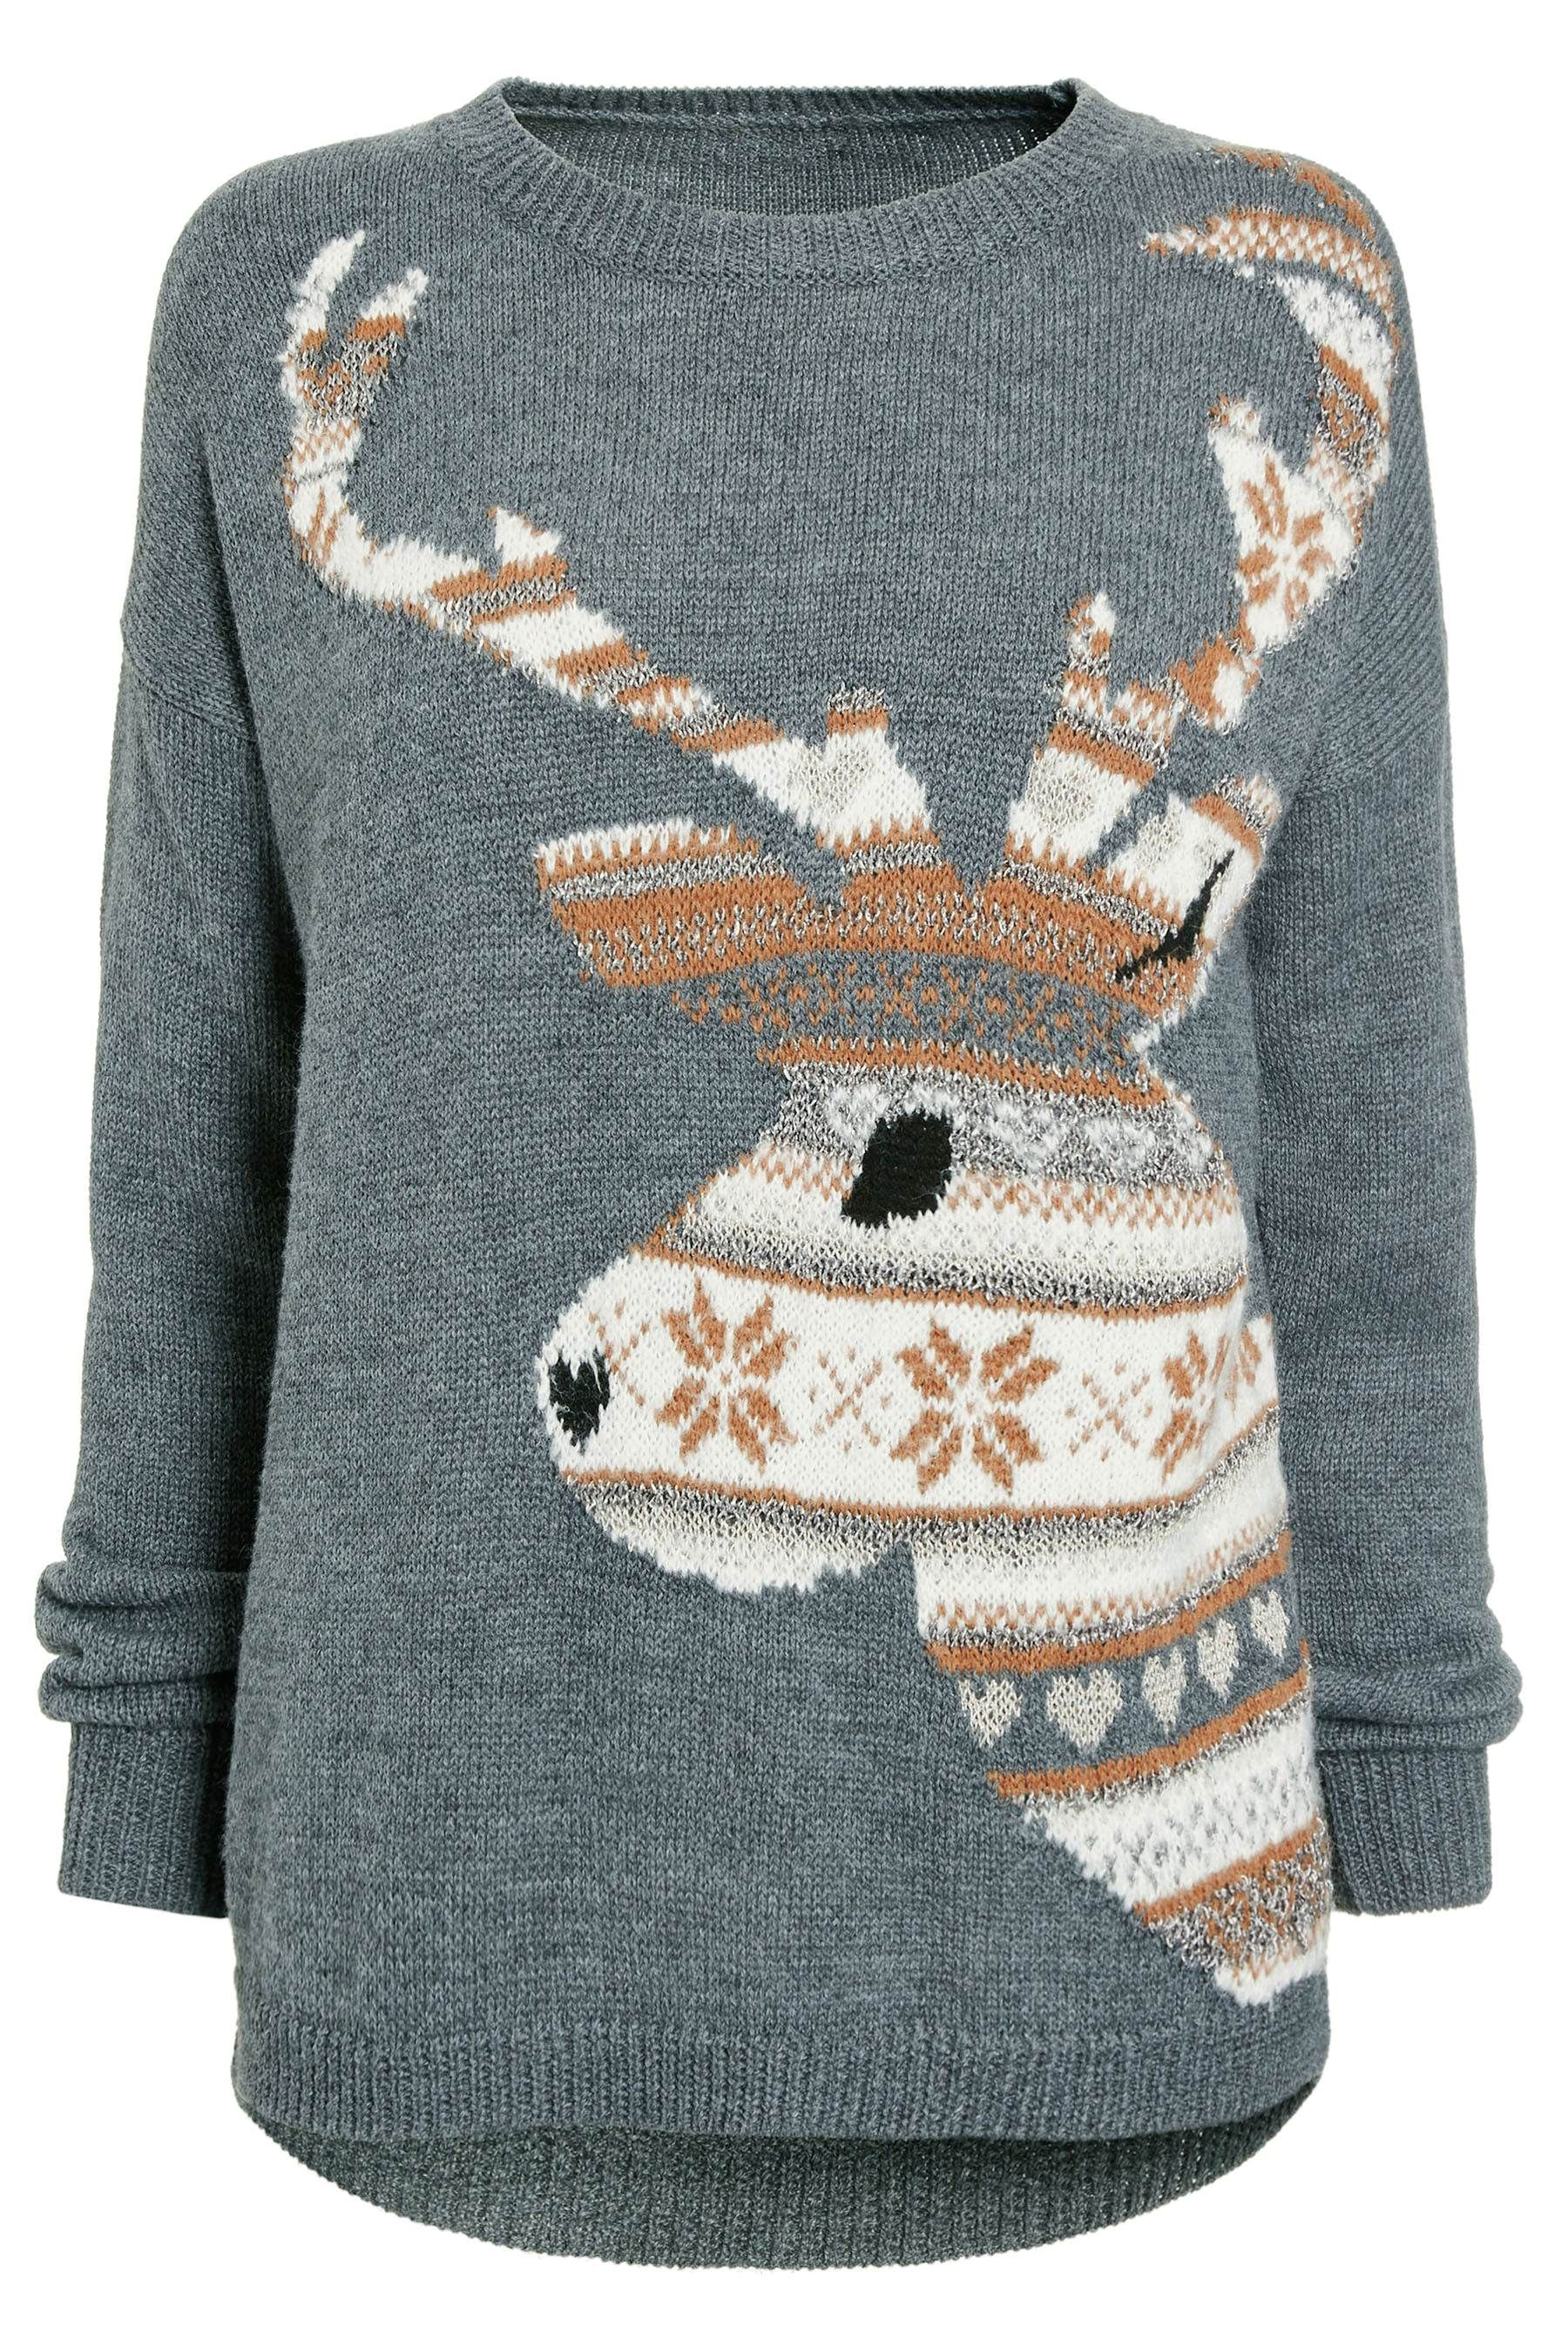 Buy Fairisle Print Sweater from the Next UK online shop